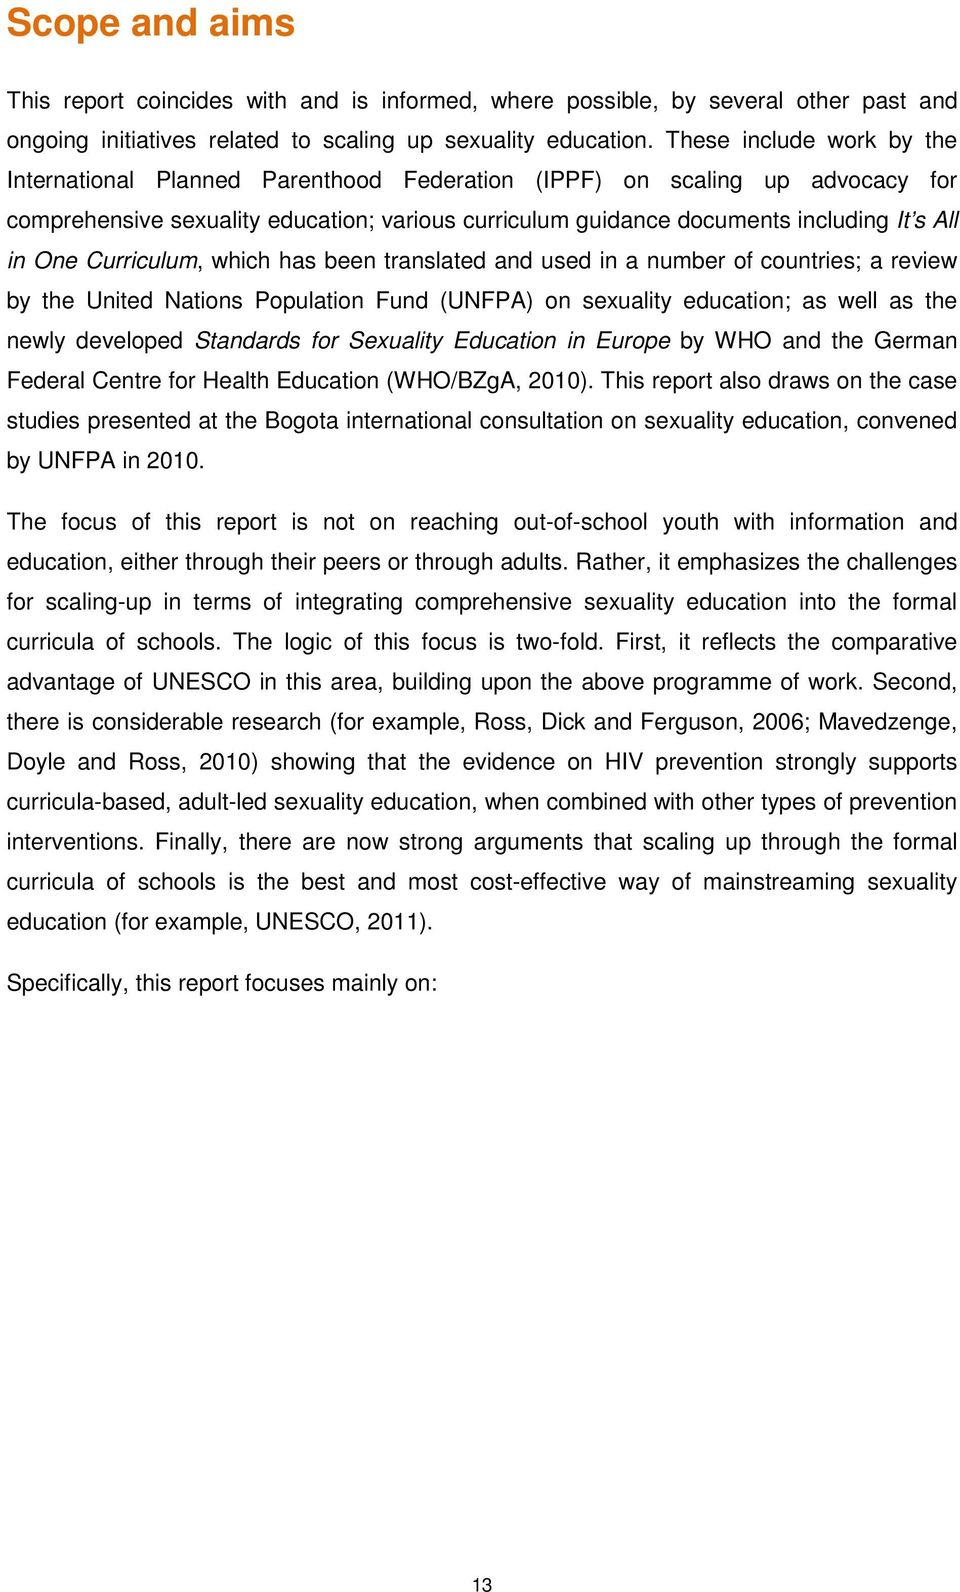 One Curriculum, which has been translated and used in a number of countries; a review by the United Nations Population Fund (UNFPA) on sexuality education; as well as the newly developed Standards